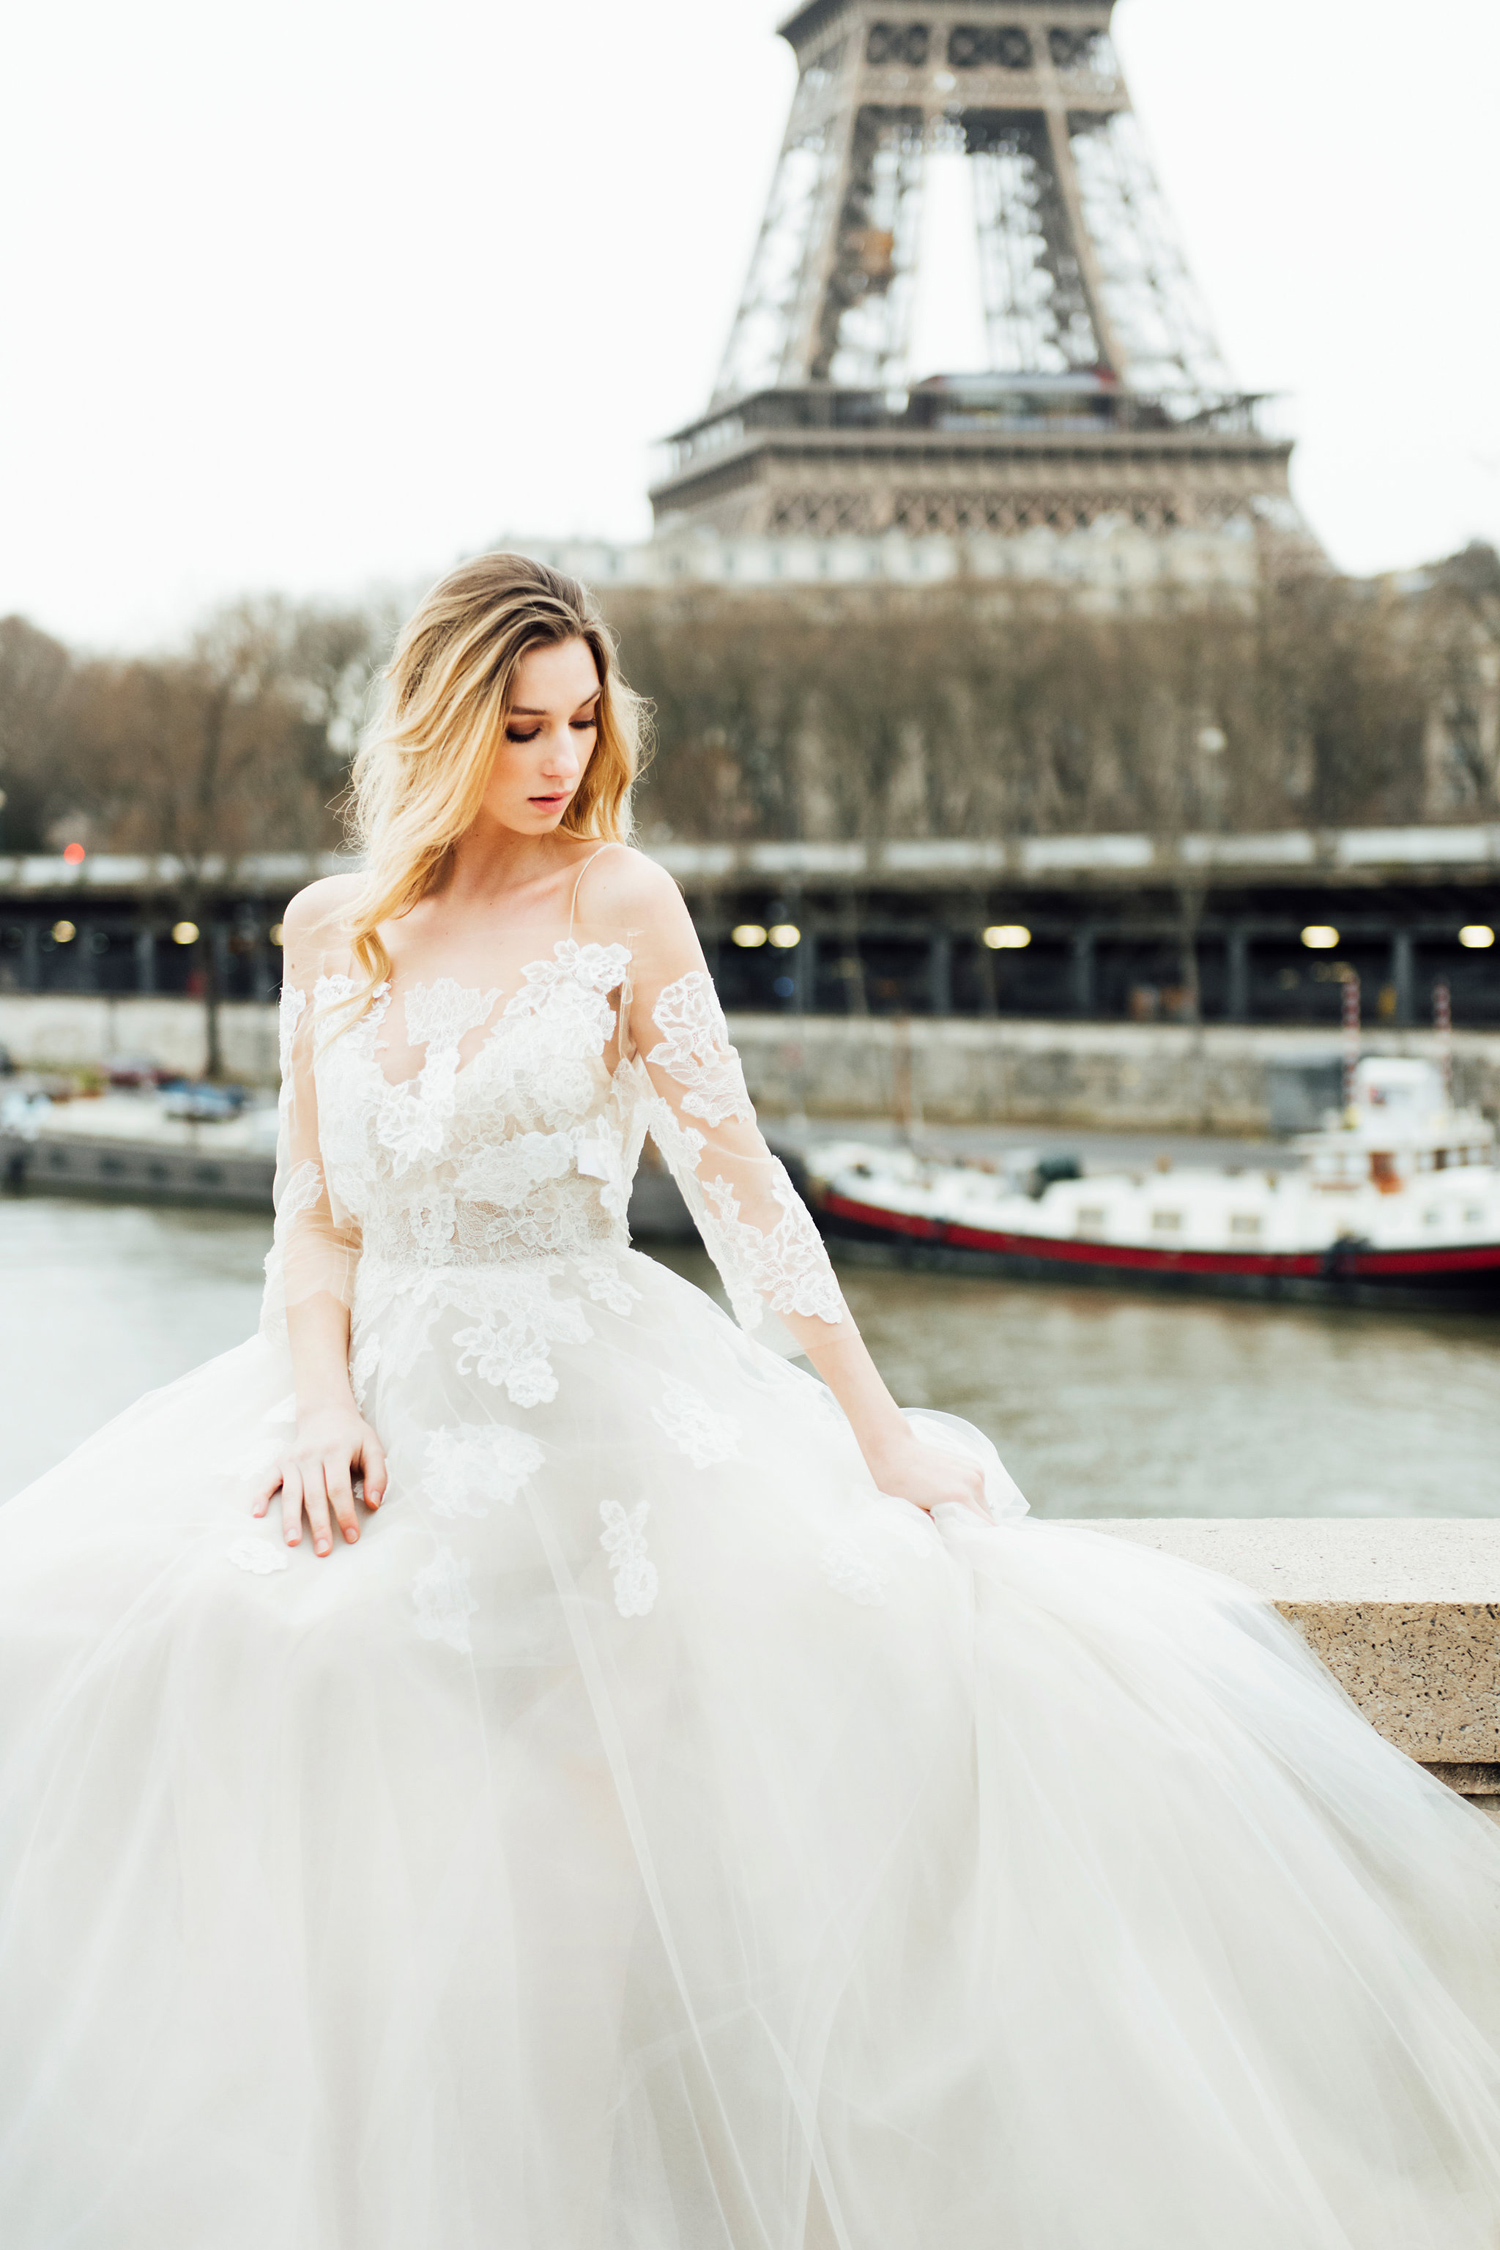 katie mitchell monique lhuillier bridal paris france wedding photographer_07.jpg